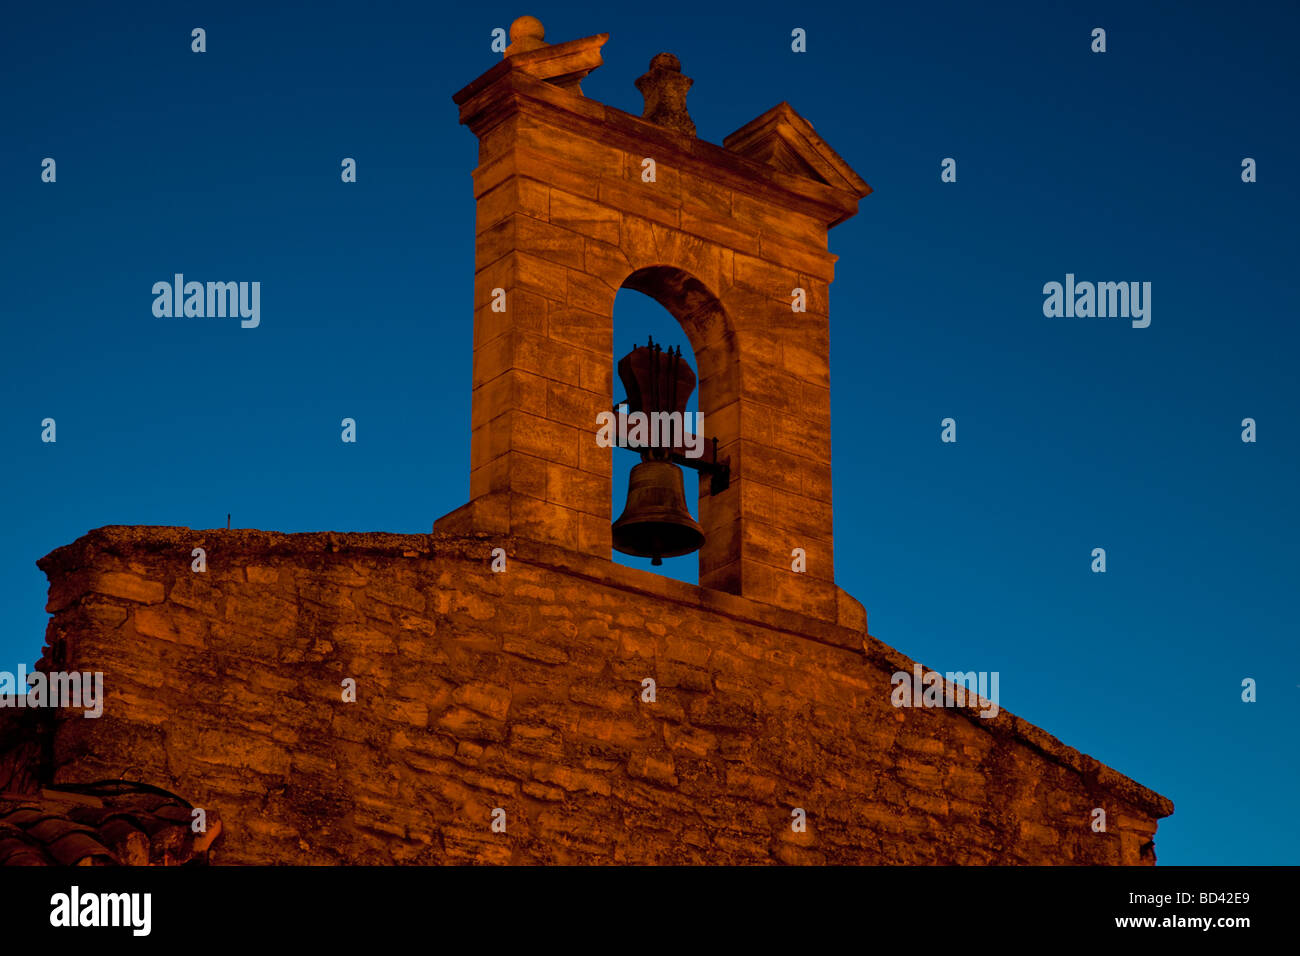 Church tower and bell in Gordes Provence France - Stock Image